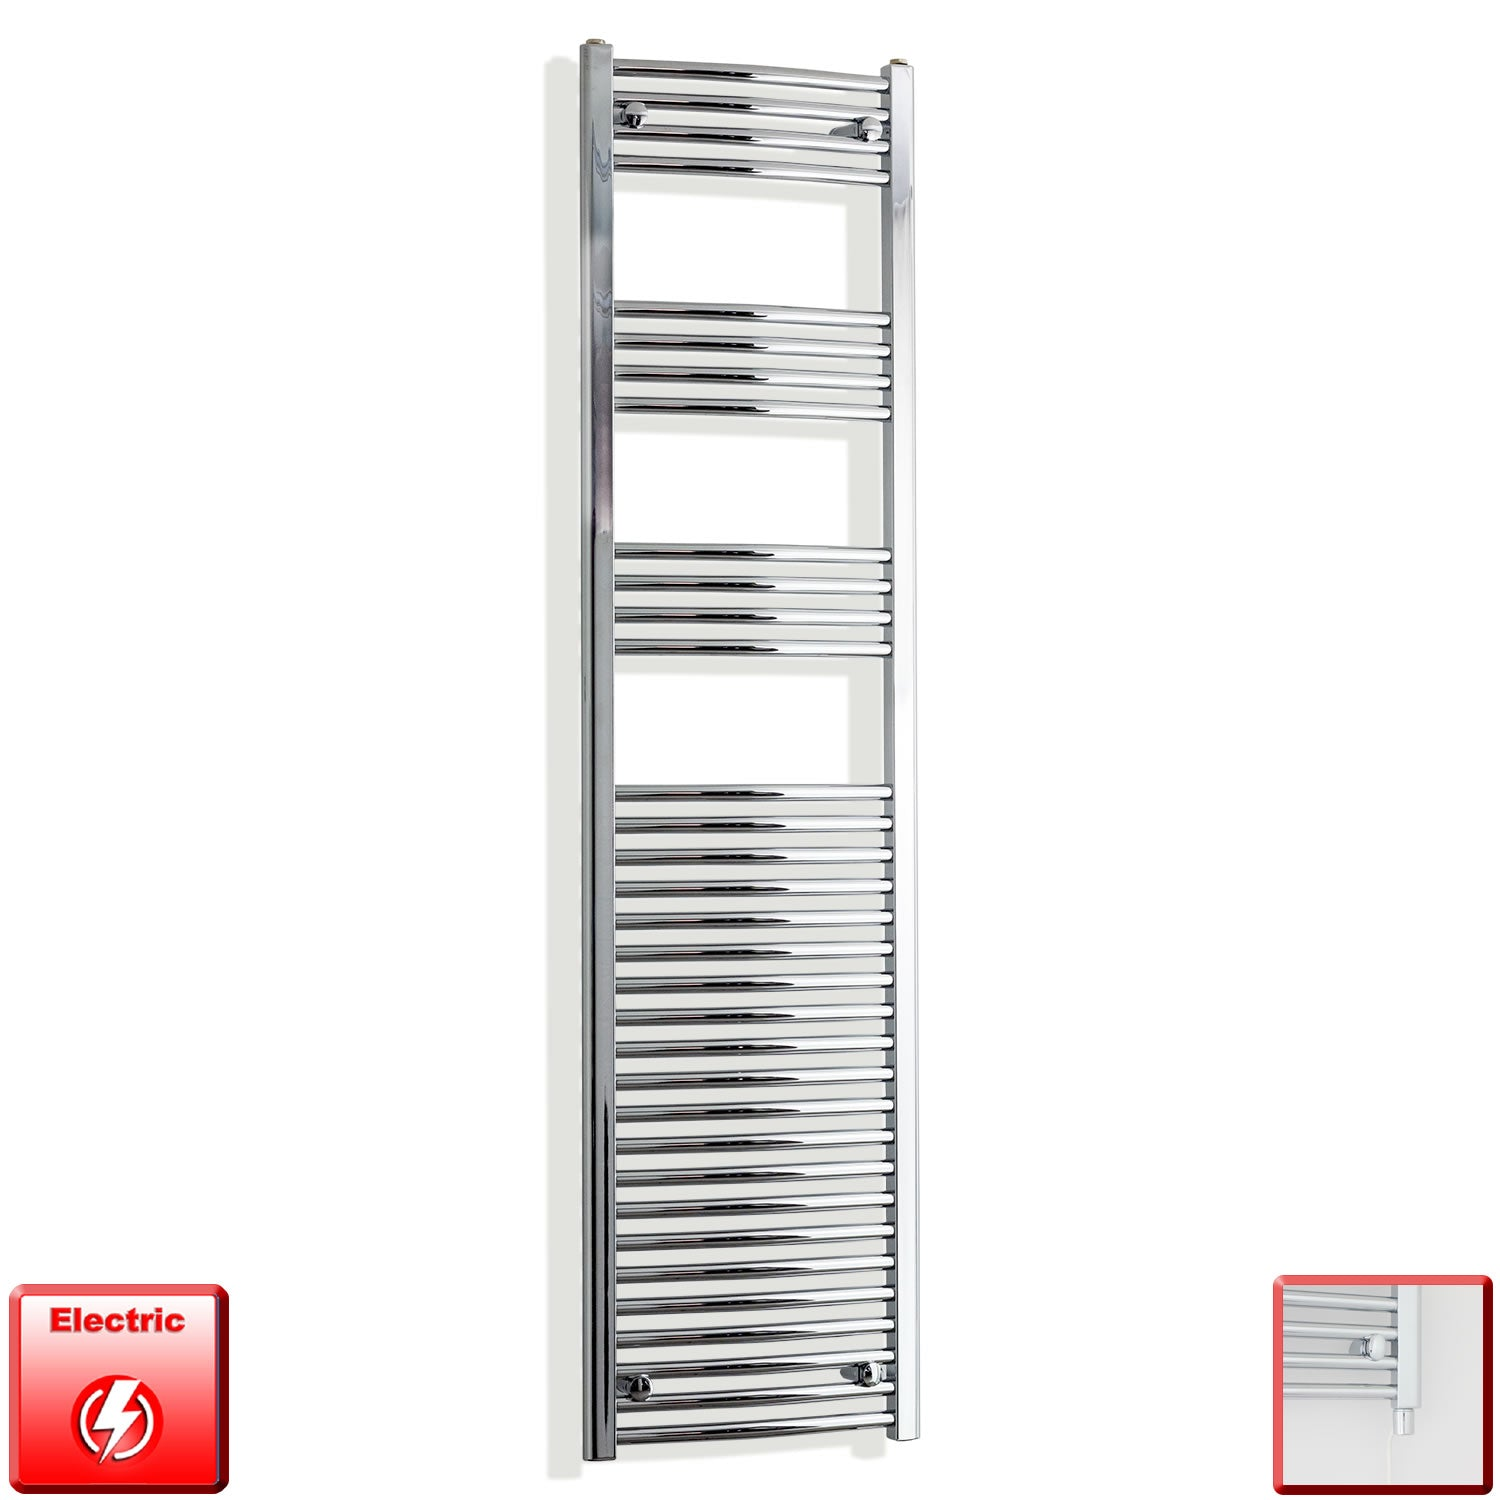 450mm Wide 1800mm High Curved Chrome Pre-Filled Electric Heated Towel Rail Radiator HTR,Single Heat Element